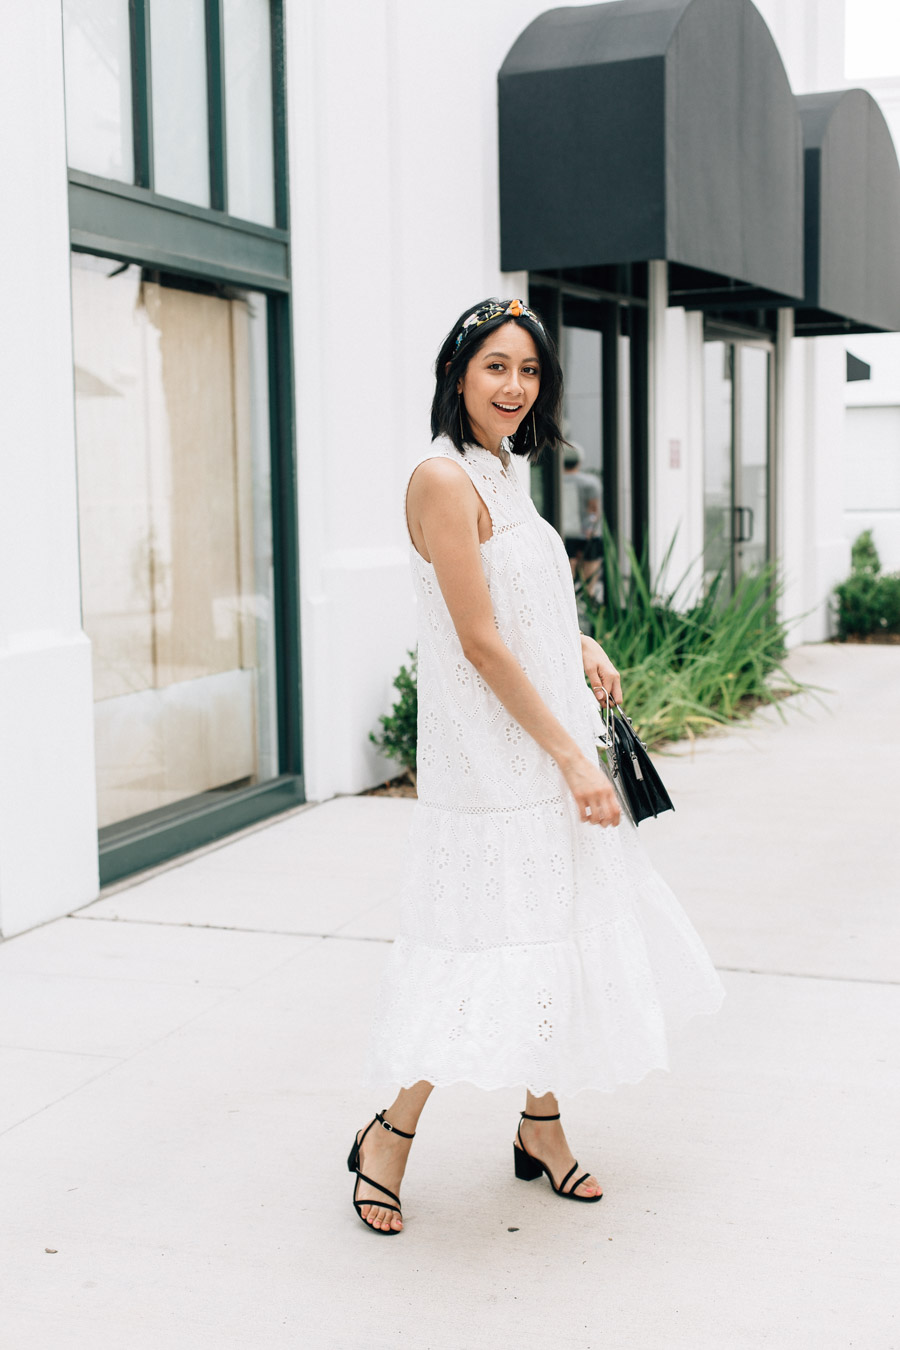 Lilly Beltran wearing a maxi white eyelet dress with black sandals and a J.Crew headband. Plus she shares her thoughts on cleaning up after your children.